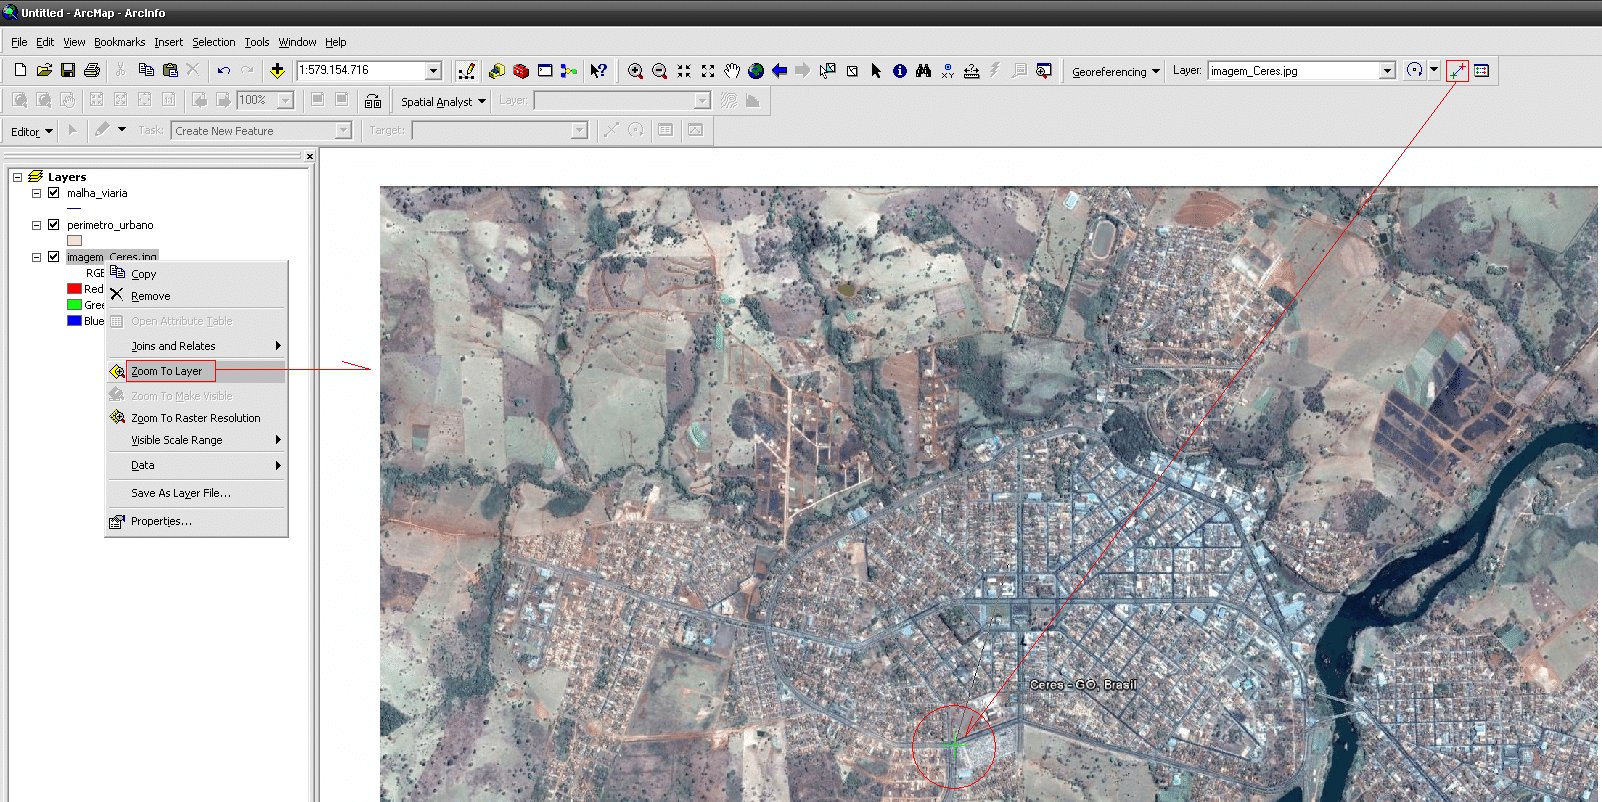 ArcGIS: Como Georreferenciar Imagens do Google Earth